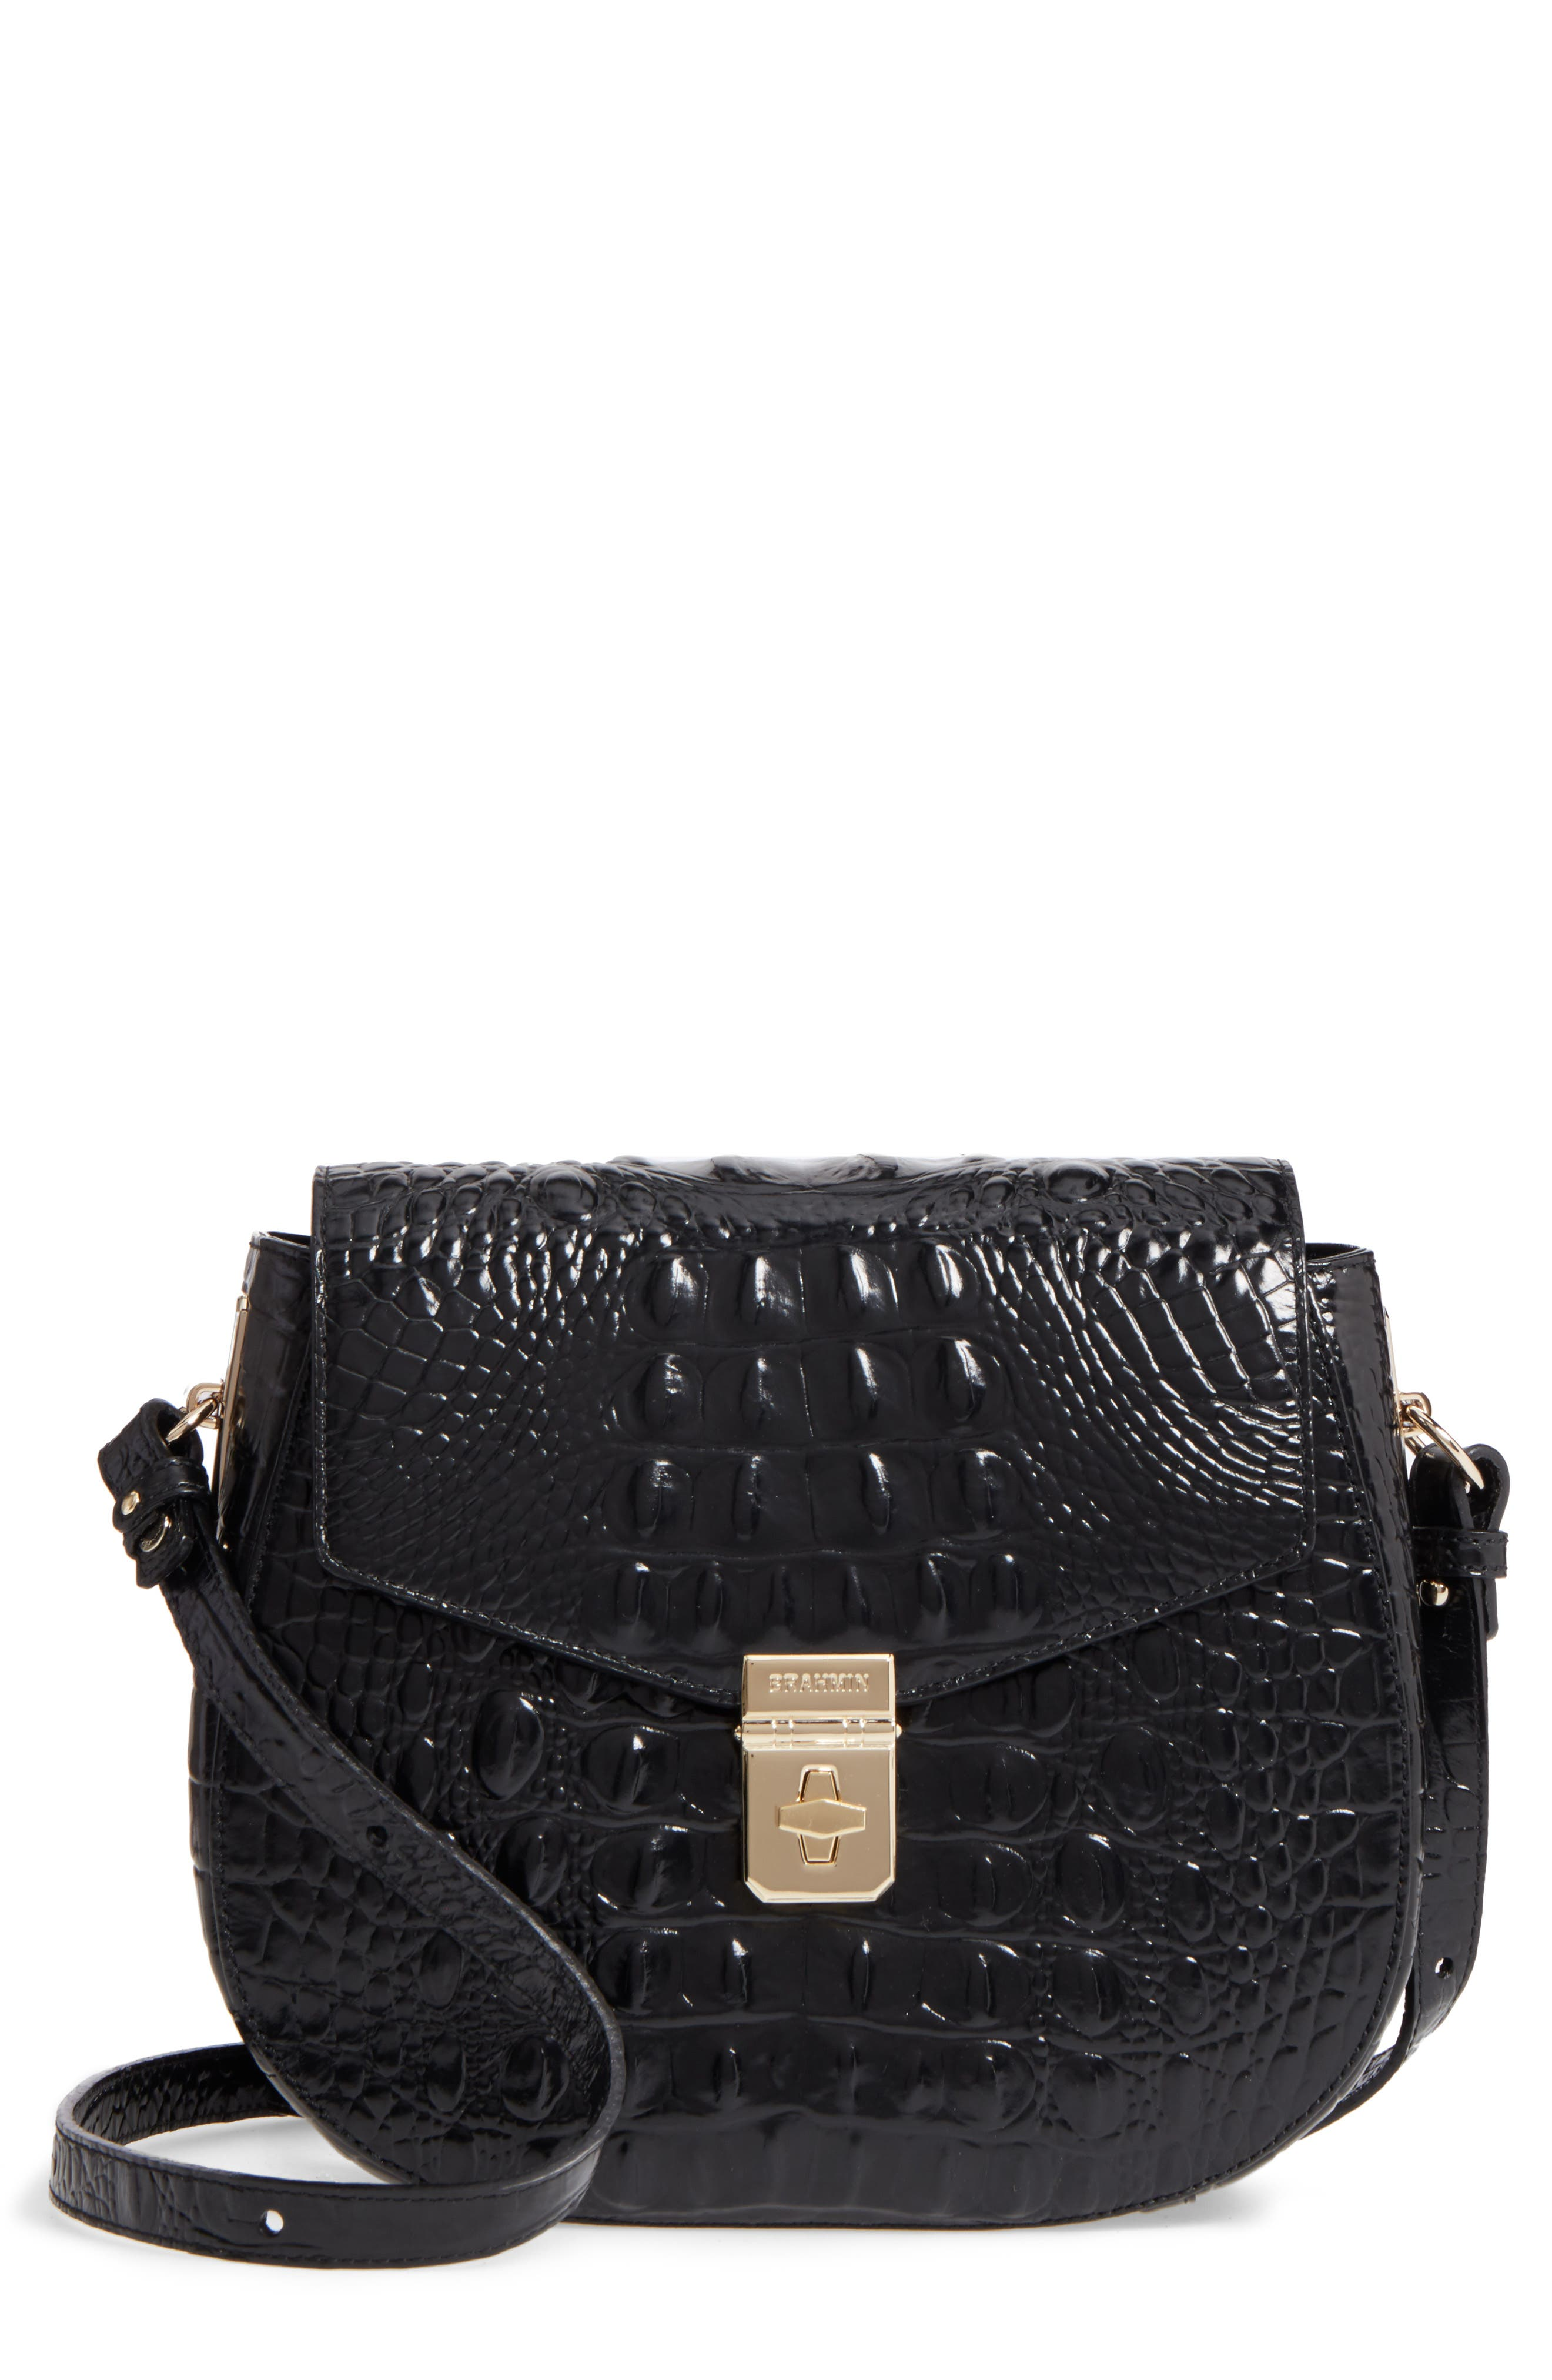 Main Image - Brahmin Melbourne - Lizzie Leather Crossbody Bag